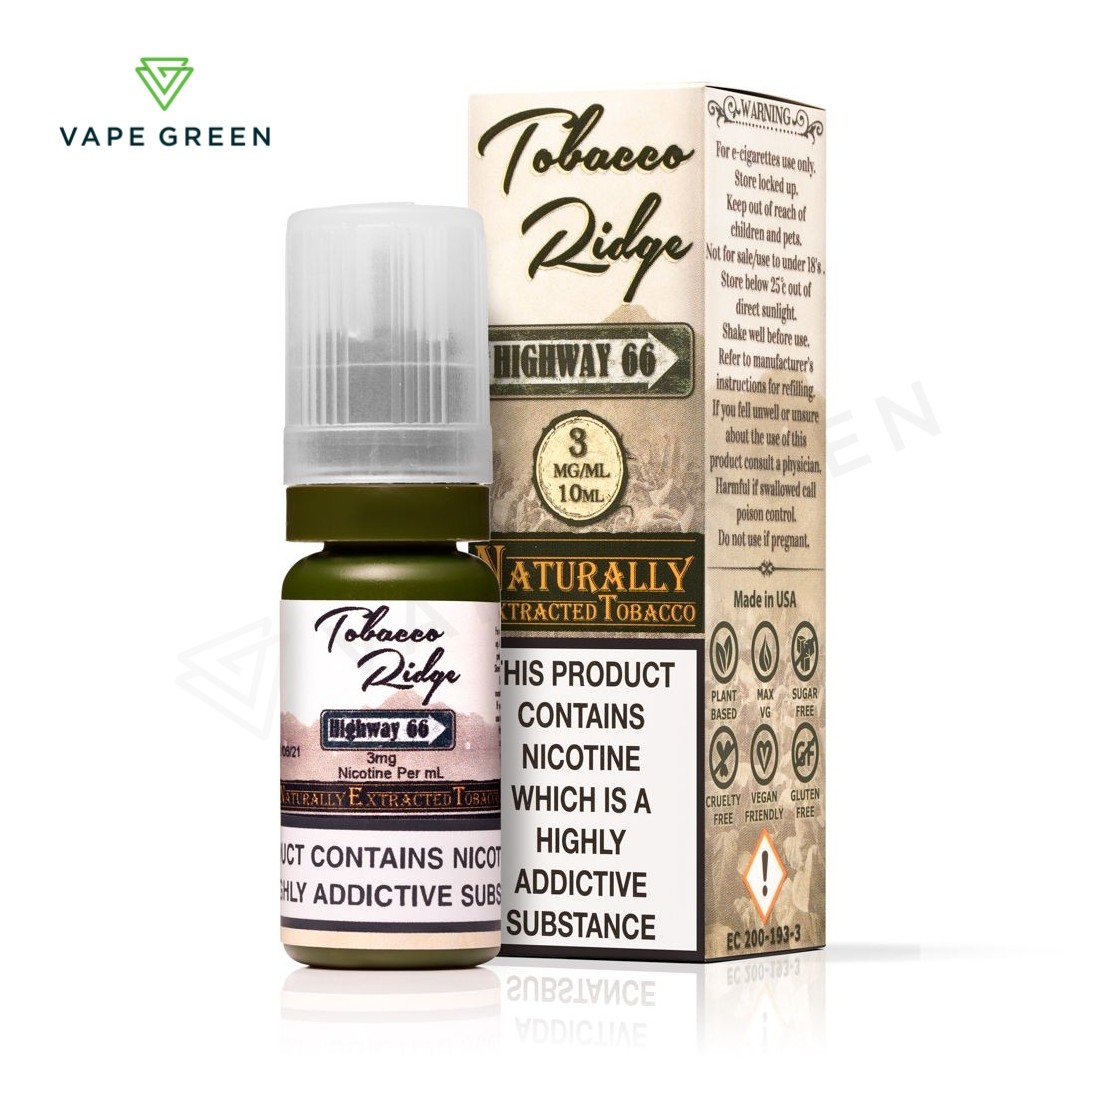 Highway 66 Natural Tobacco E-liquid by Kind Juice